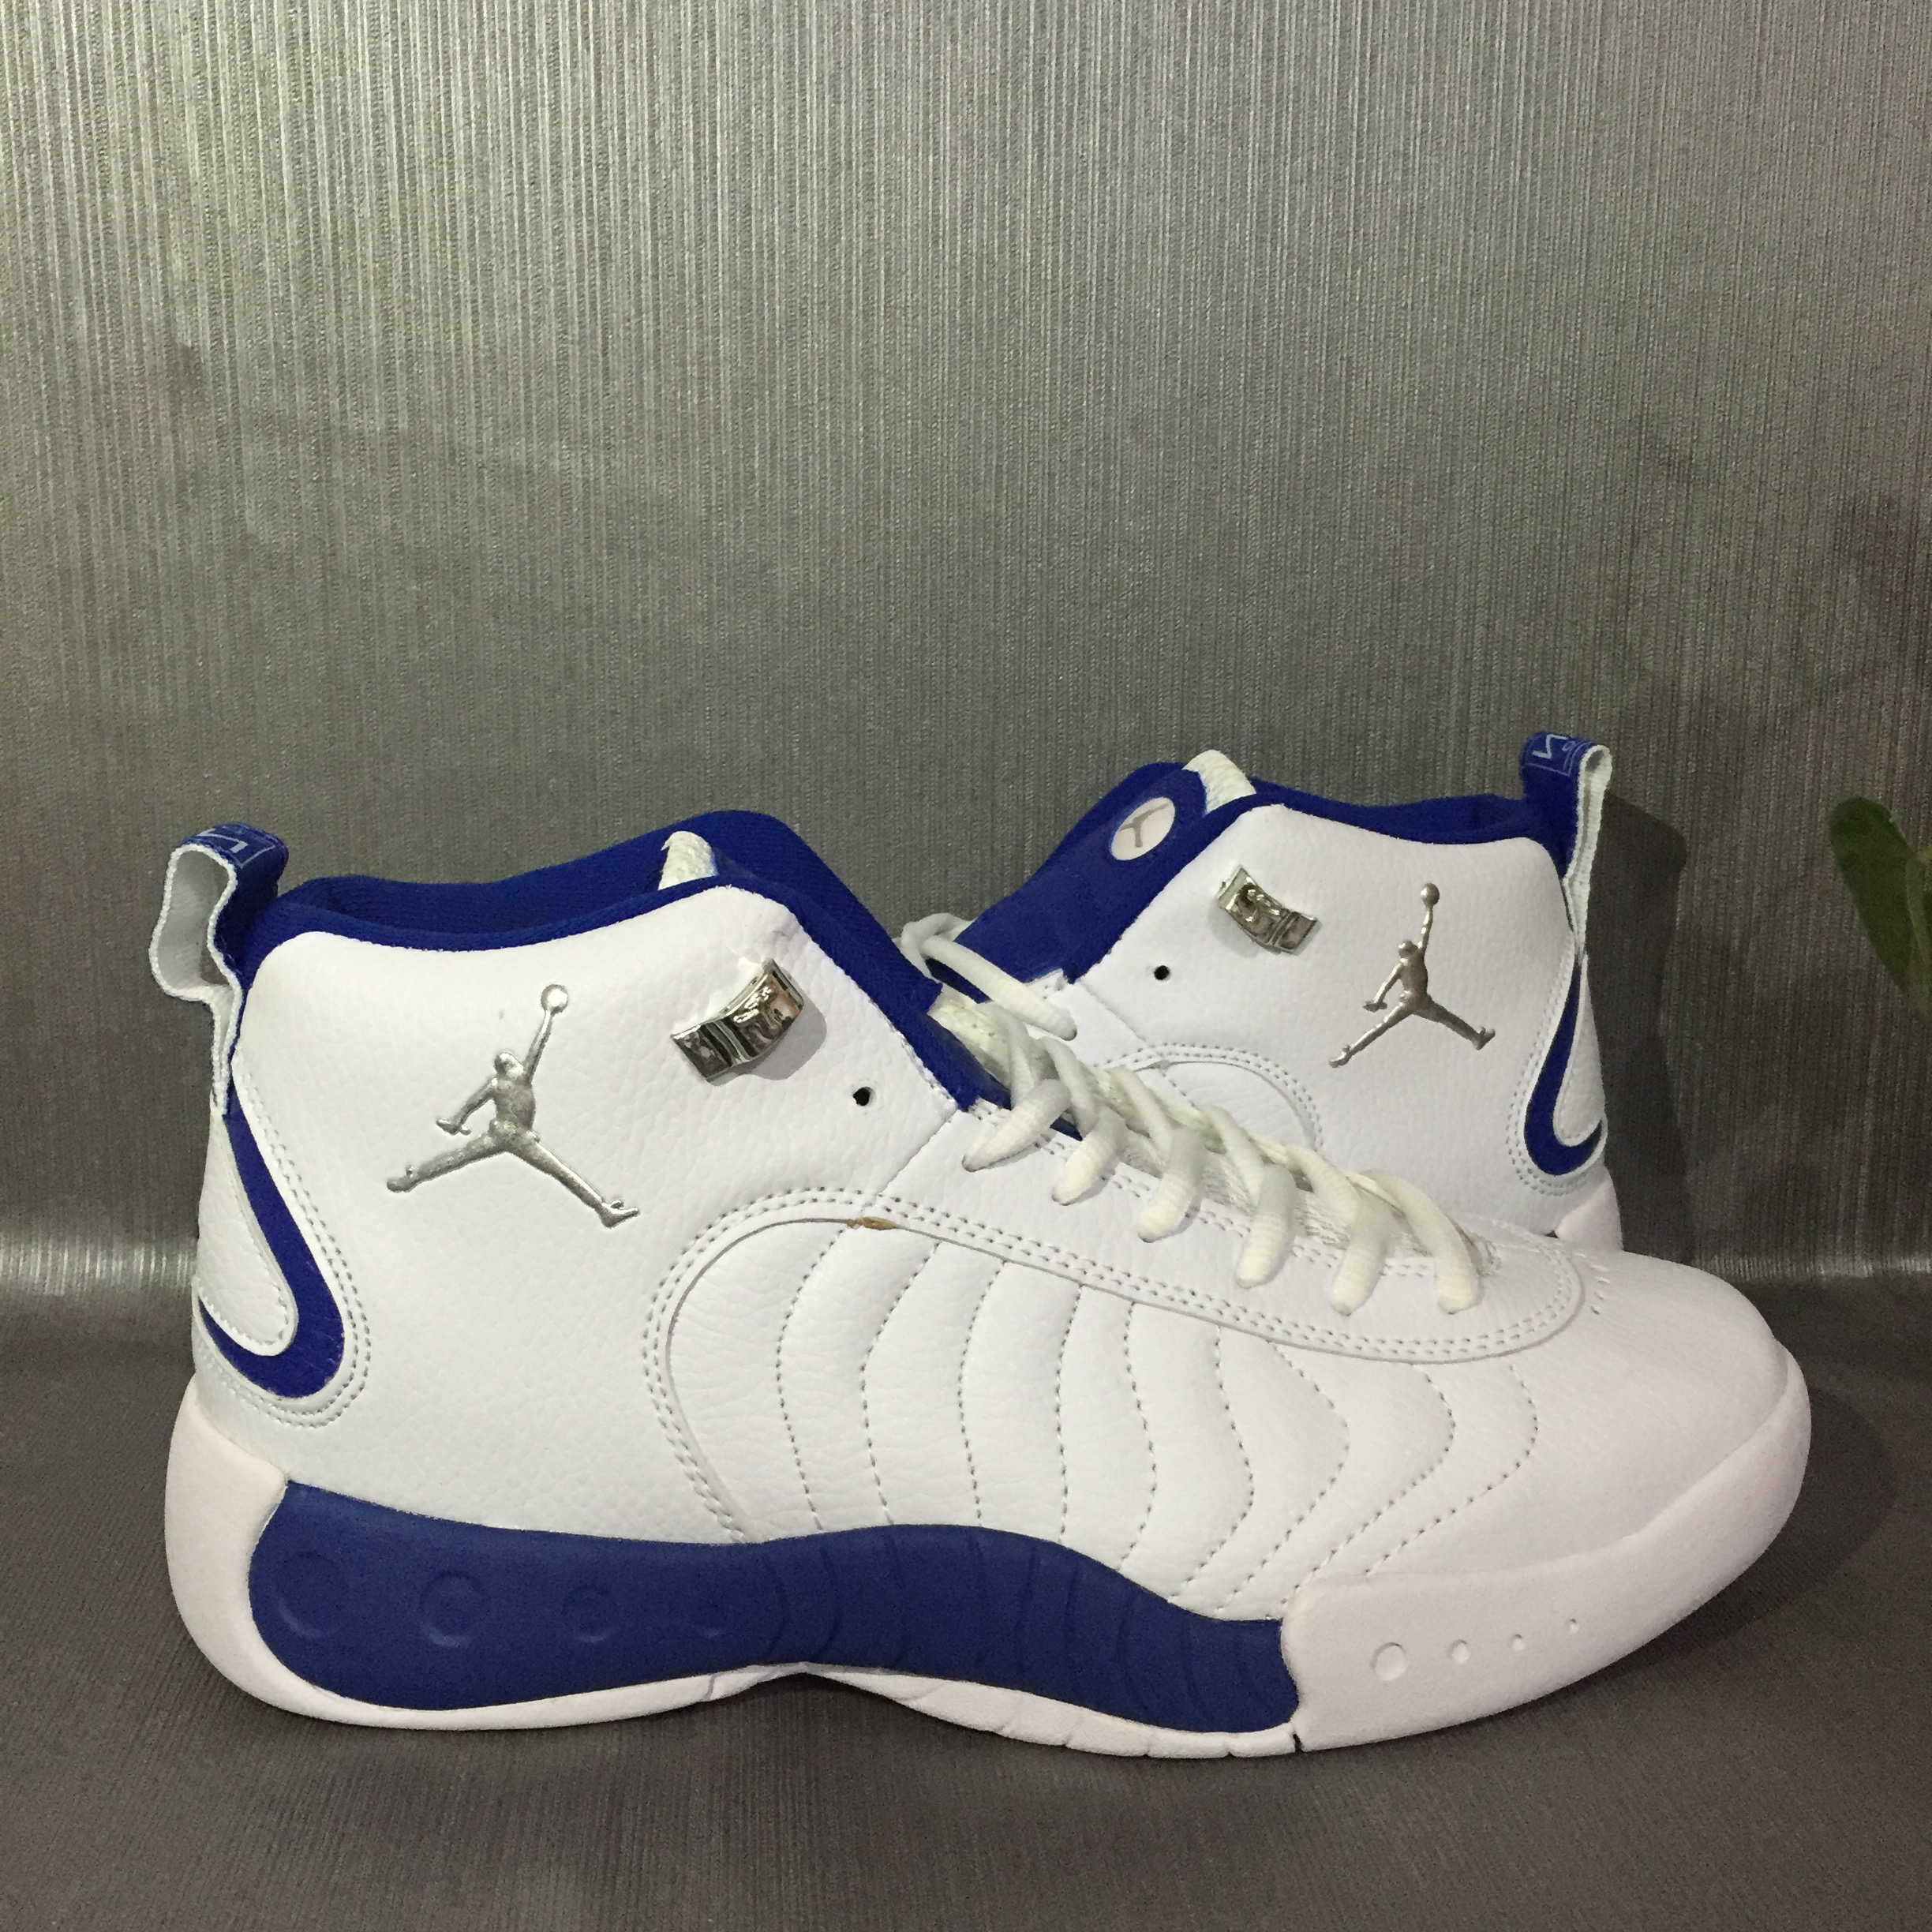 2017 Jordan Jumpman Pro White Blue Shoes